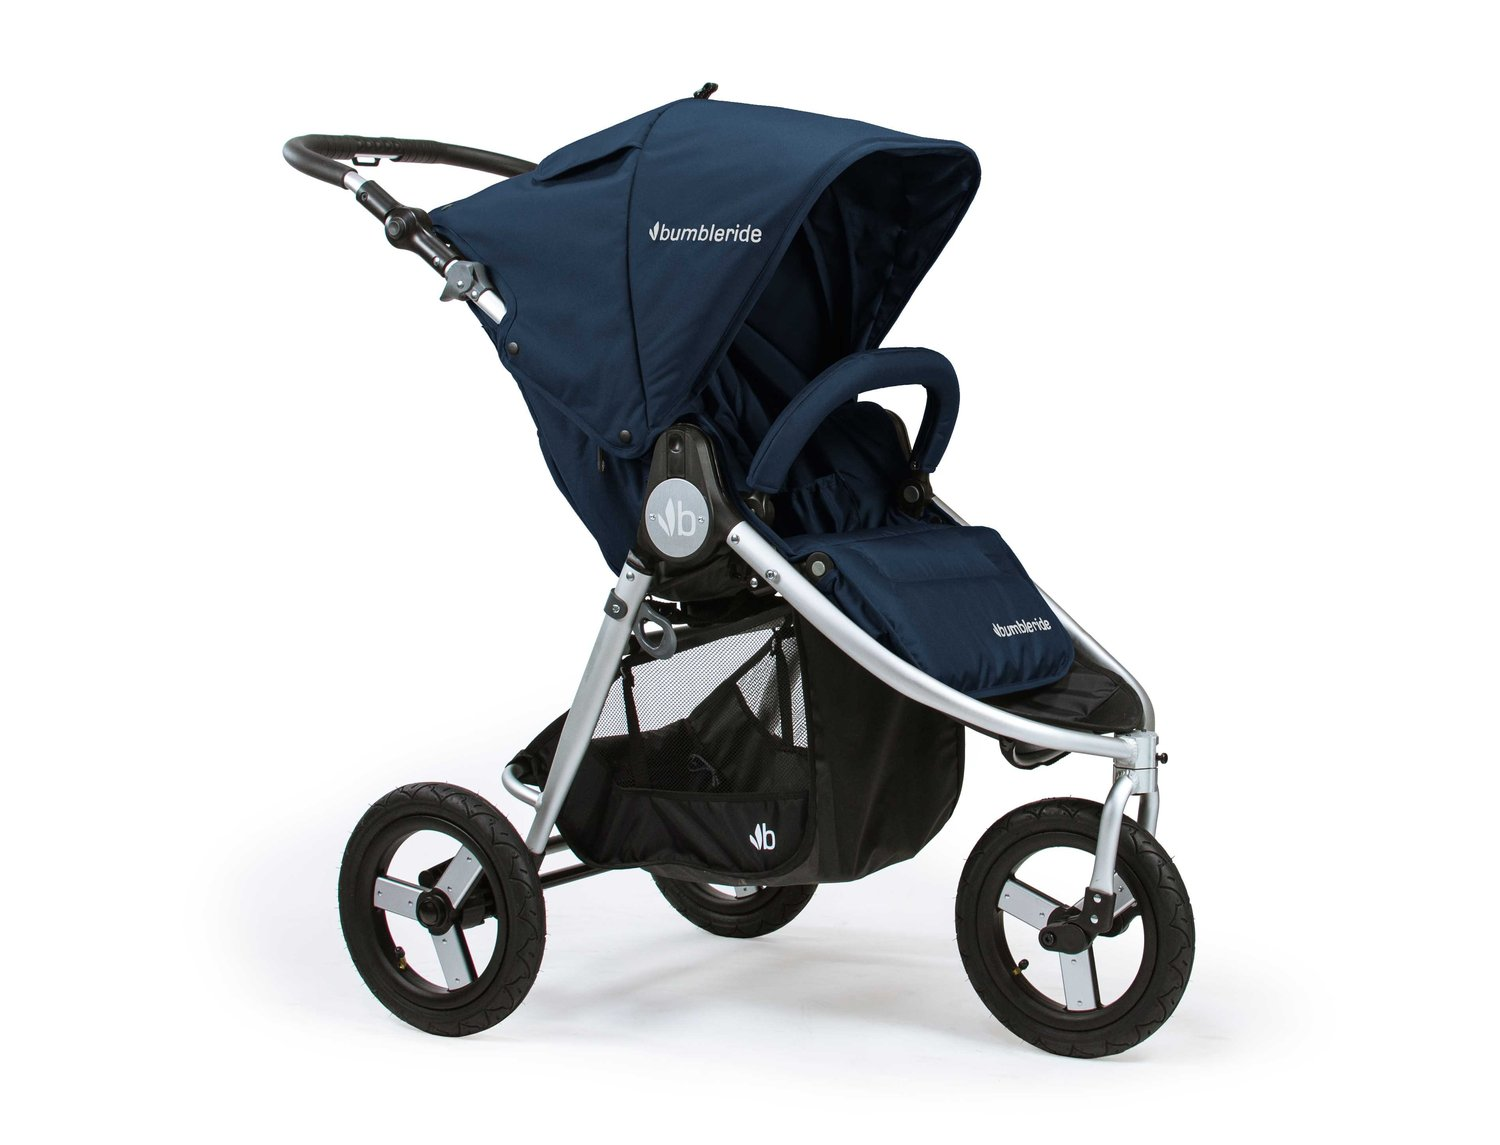 Bumbleride Indie Full-Size Single Stroller